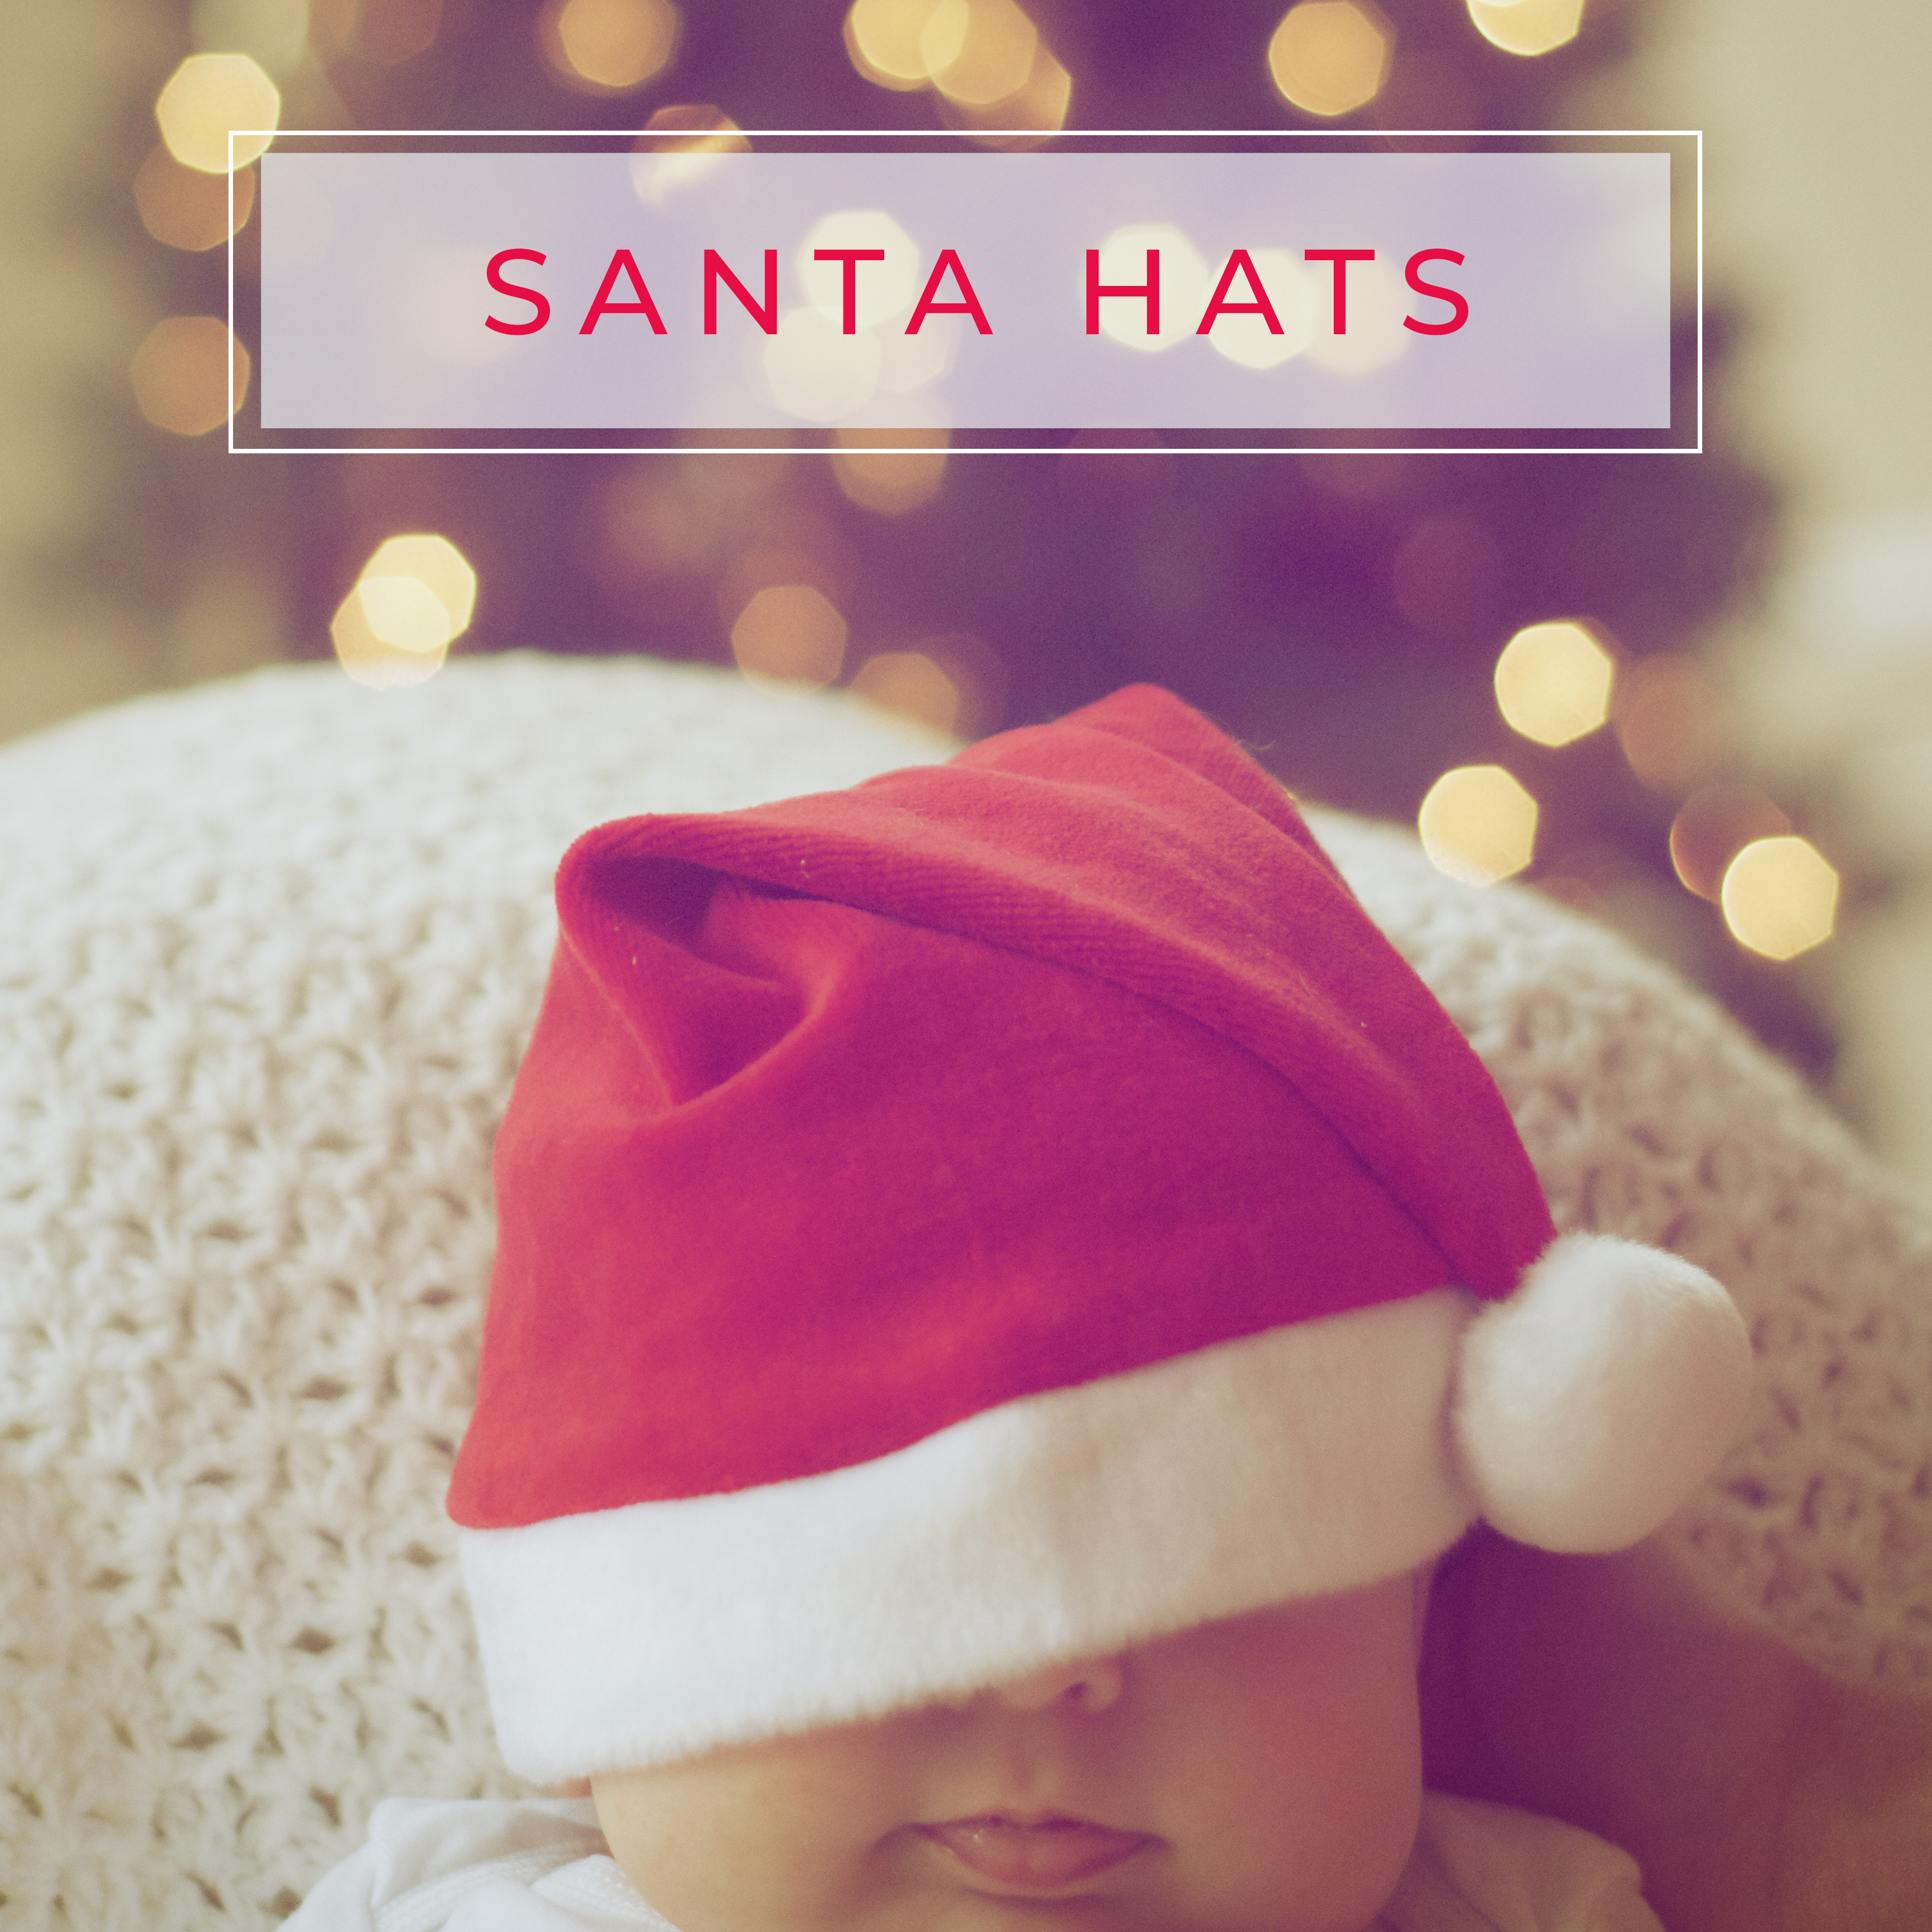 PromoBrand Branded Promotional Santa Hats Bounce Creative Designs